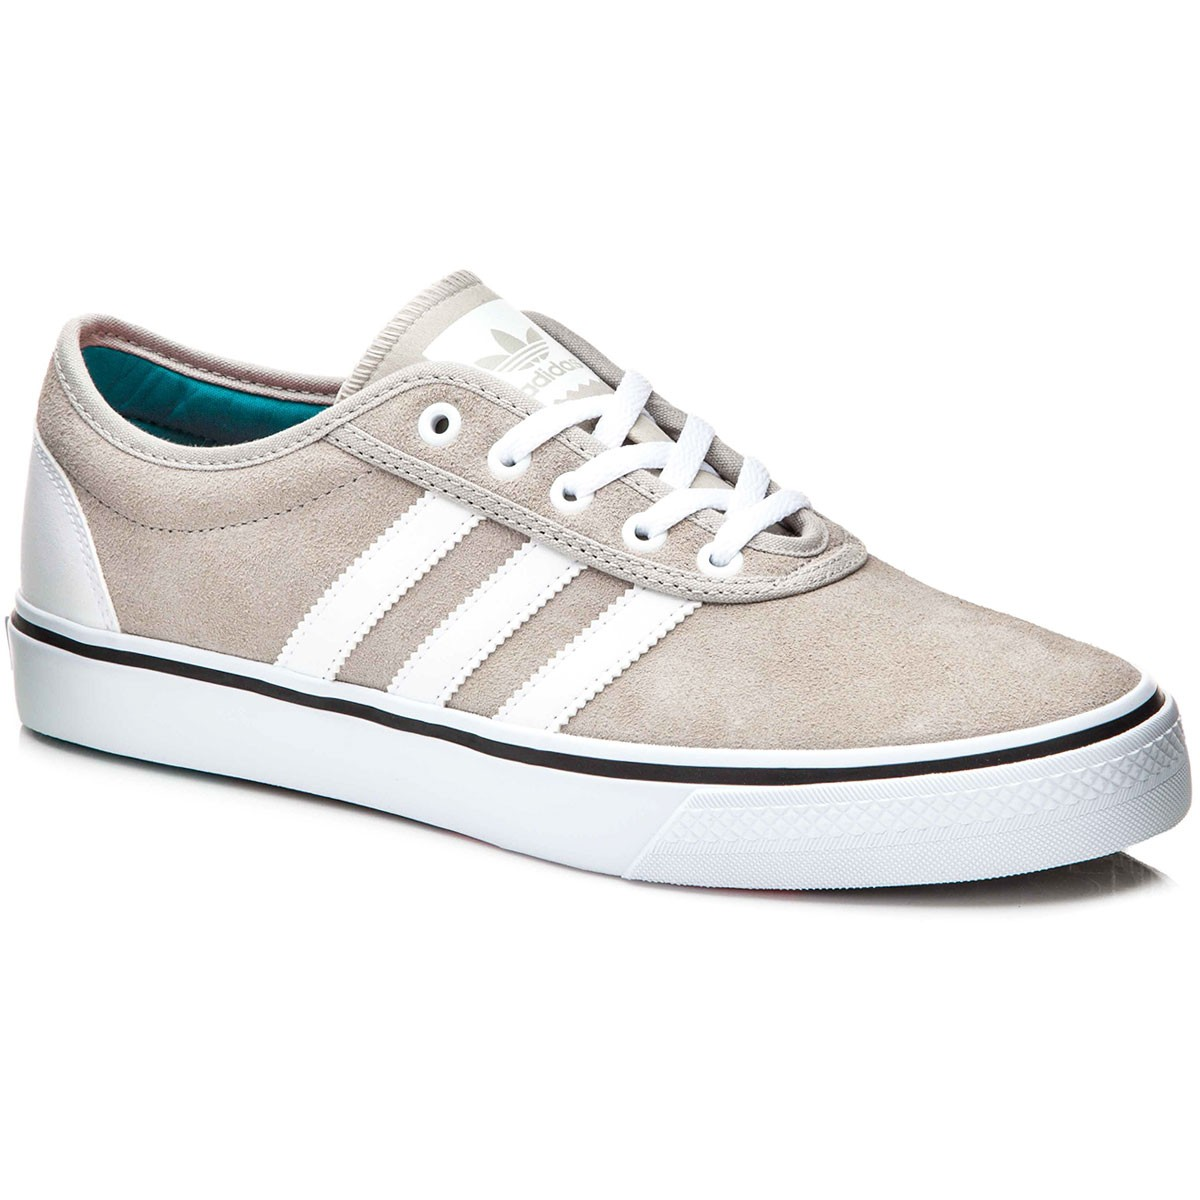 Adidas Adi Ease Skate Shoes